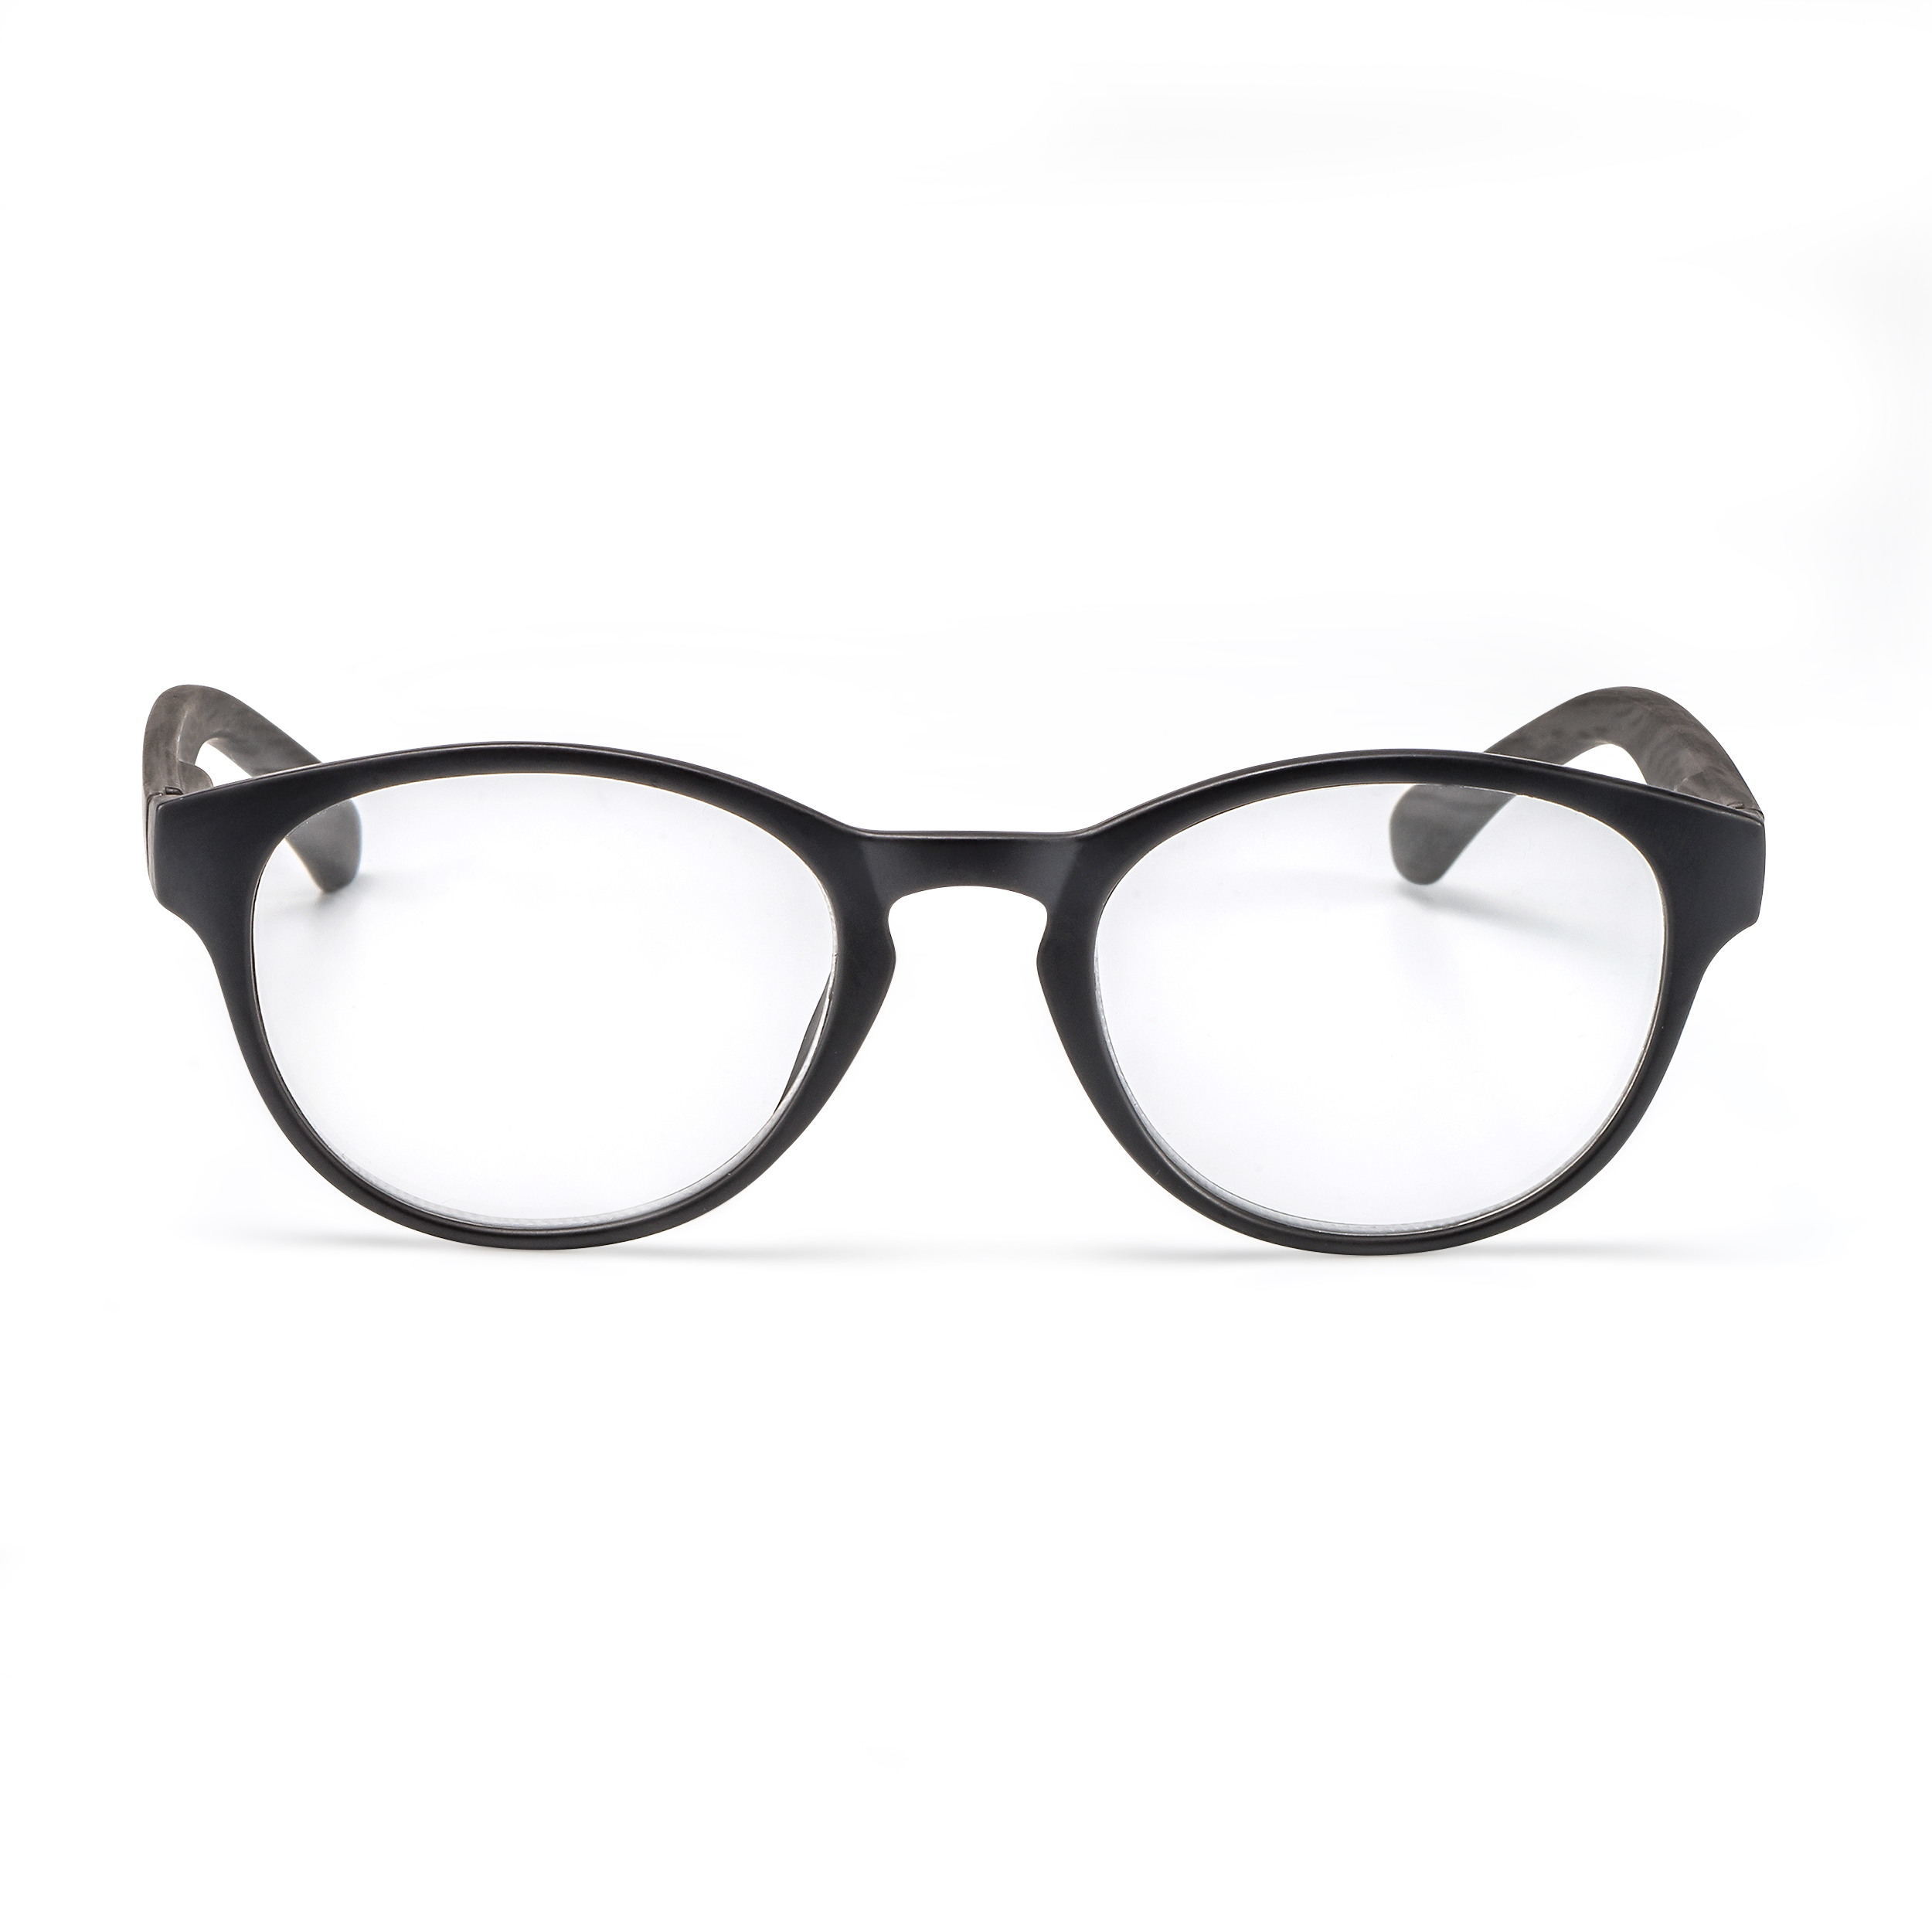 Front view reading glasses Amsterdam black